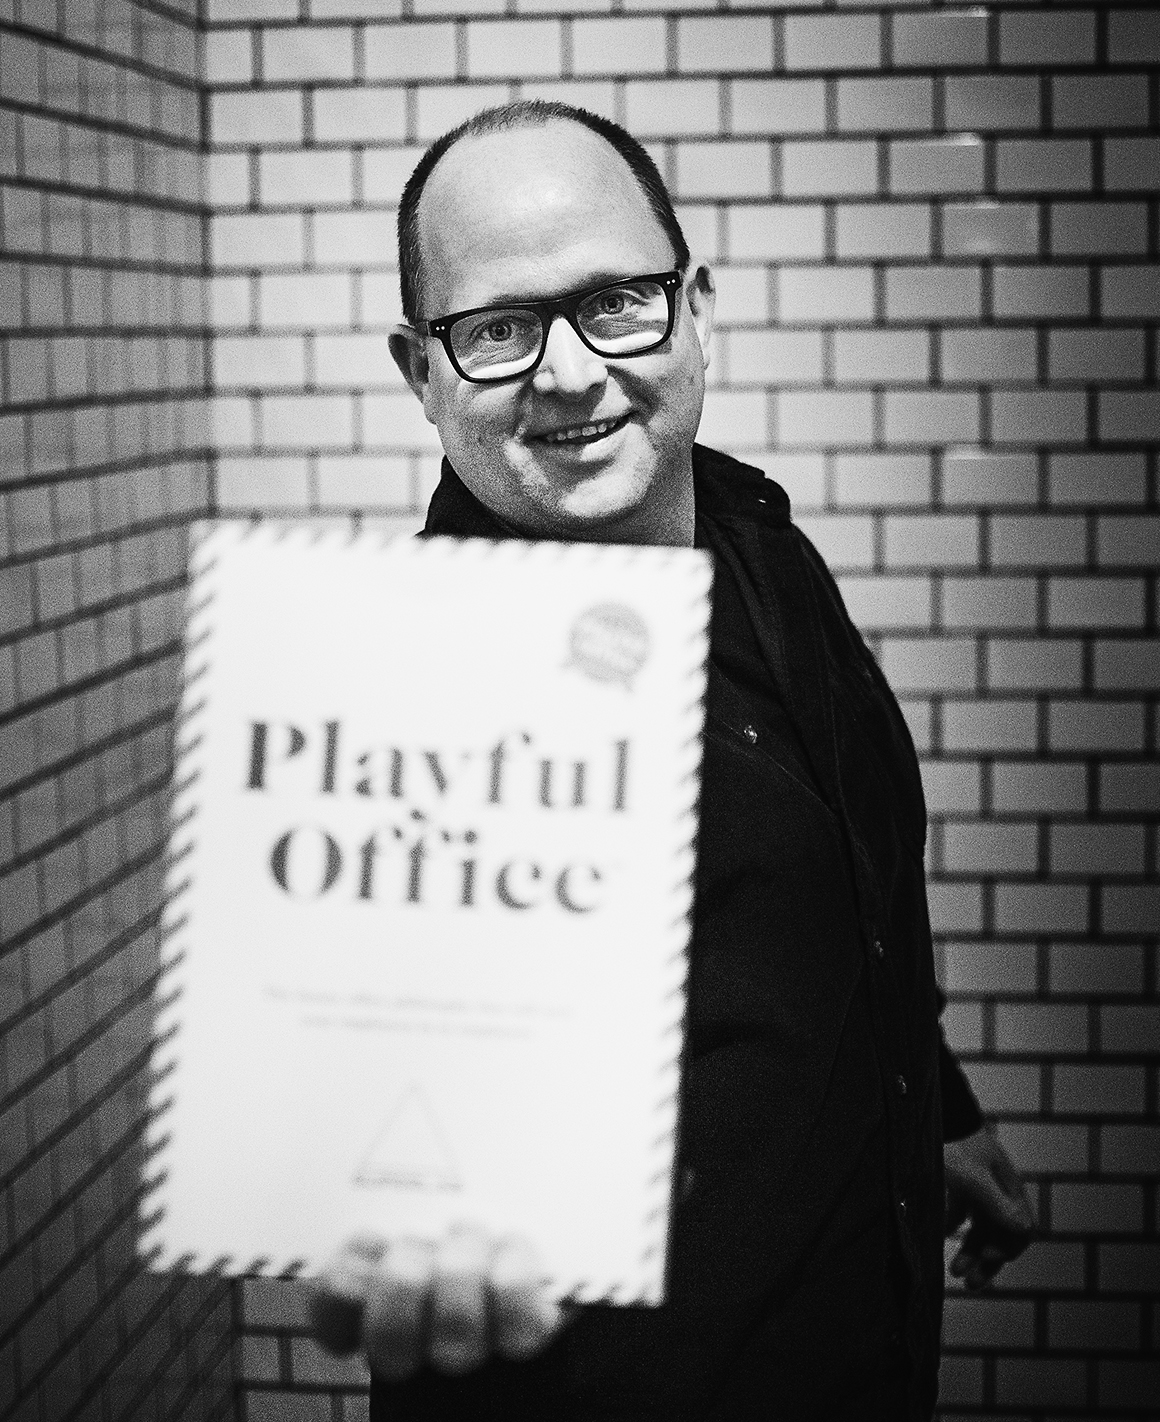 Samuel West: Avhandling i organisationspsykologi blev till boken Playful Office